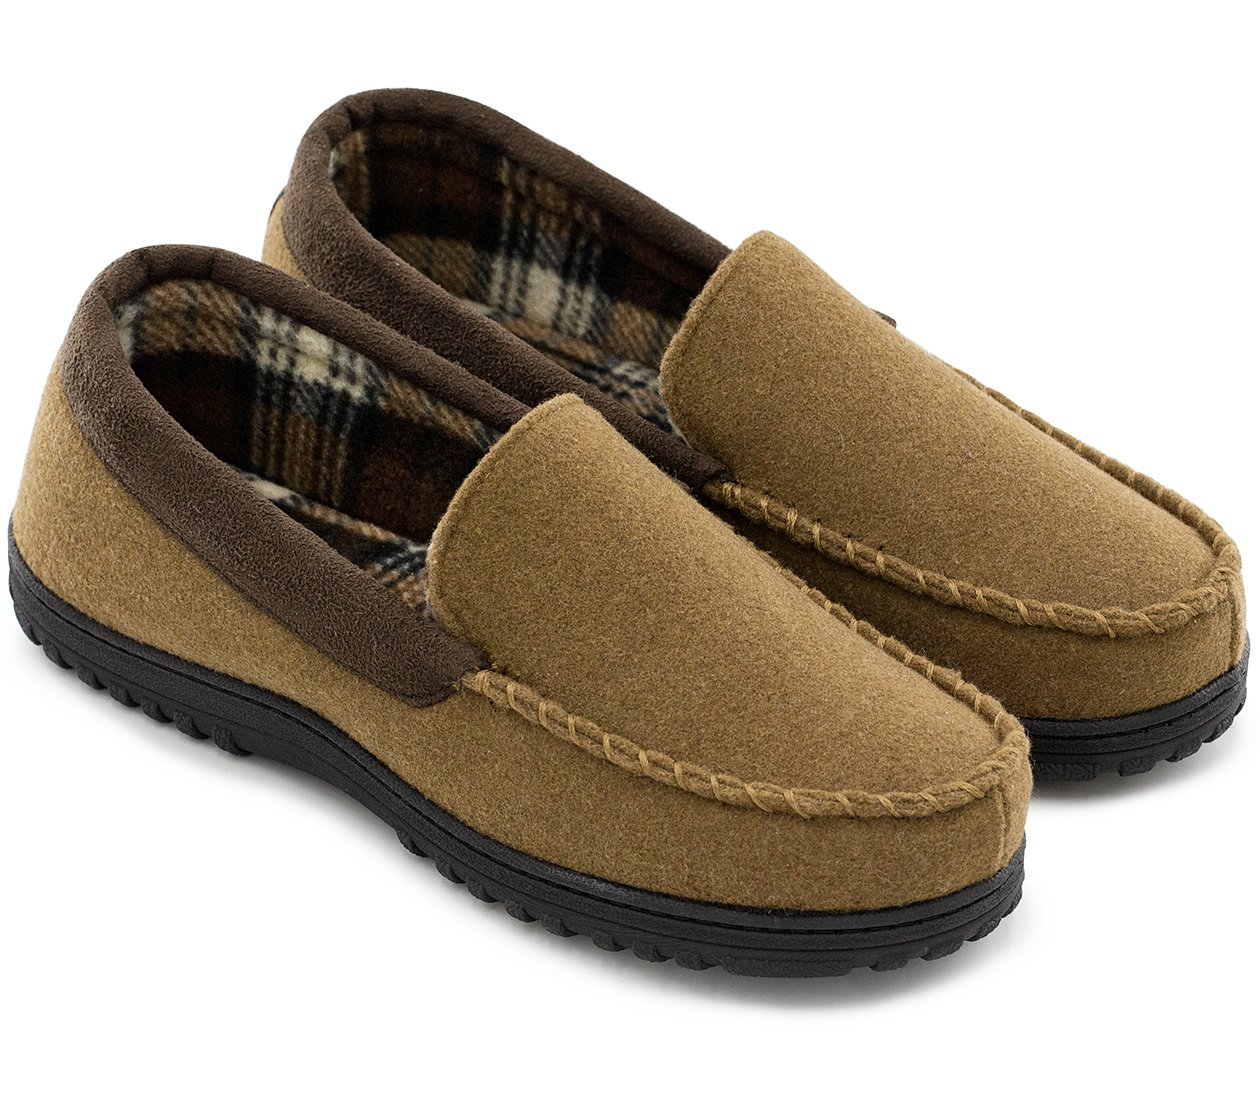 HomeTop Men's Indoor Outdoor Wool Micro Suede Moccasin Slippers House Shoes (43 (US Men's 10), Camel)